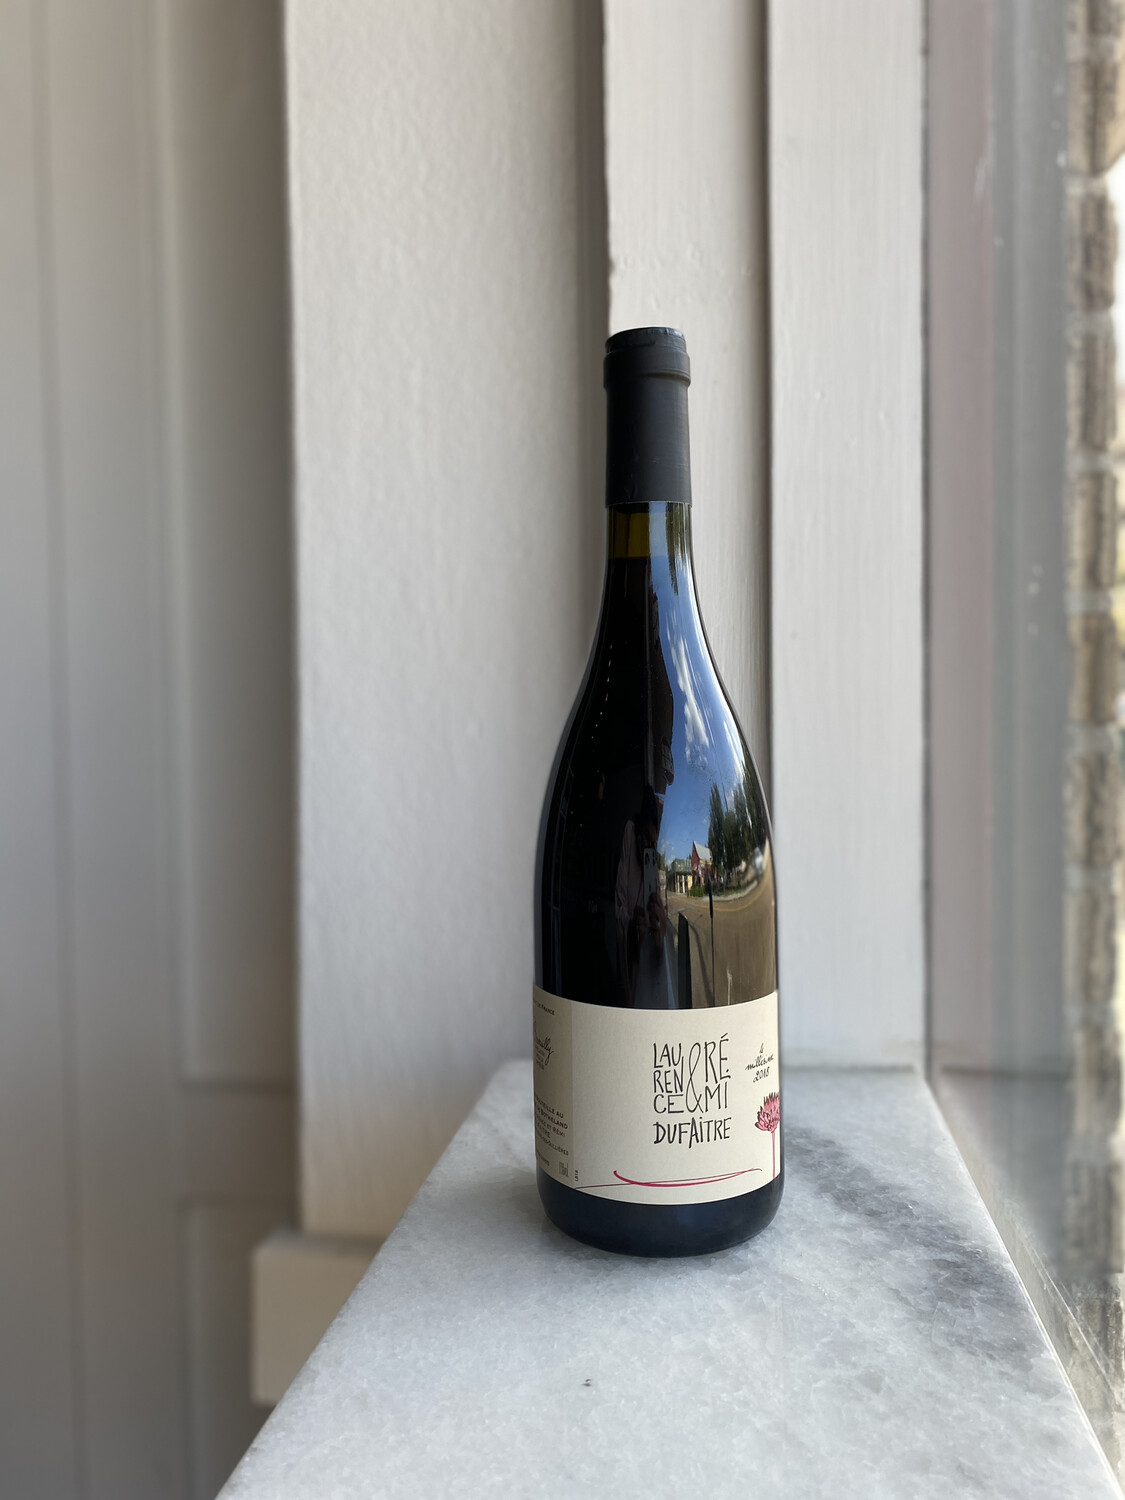 Dufaitre, Brouilly (2018)